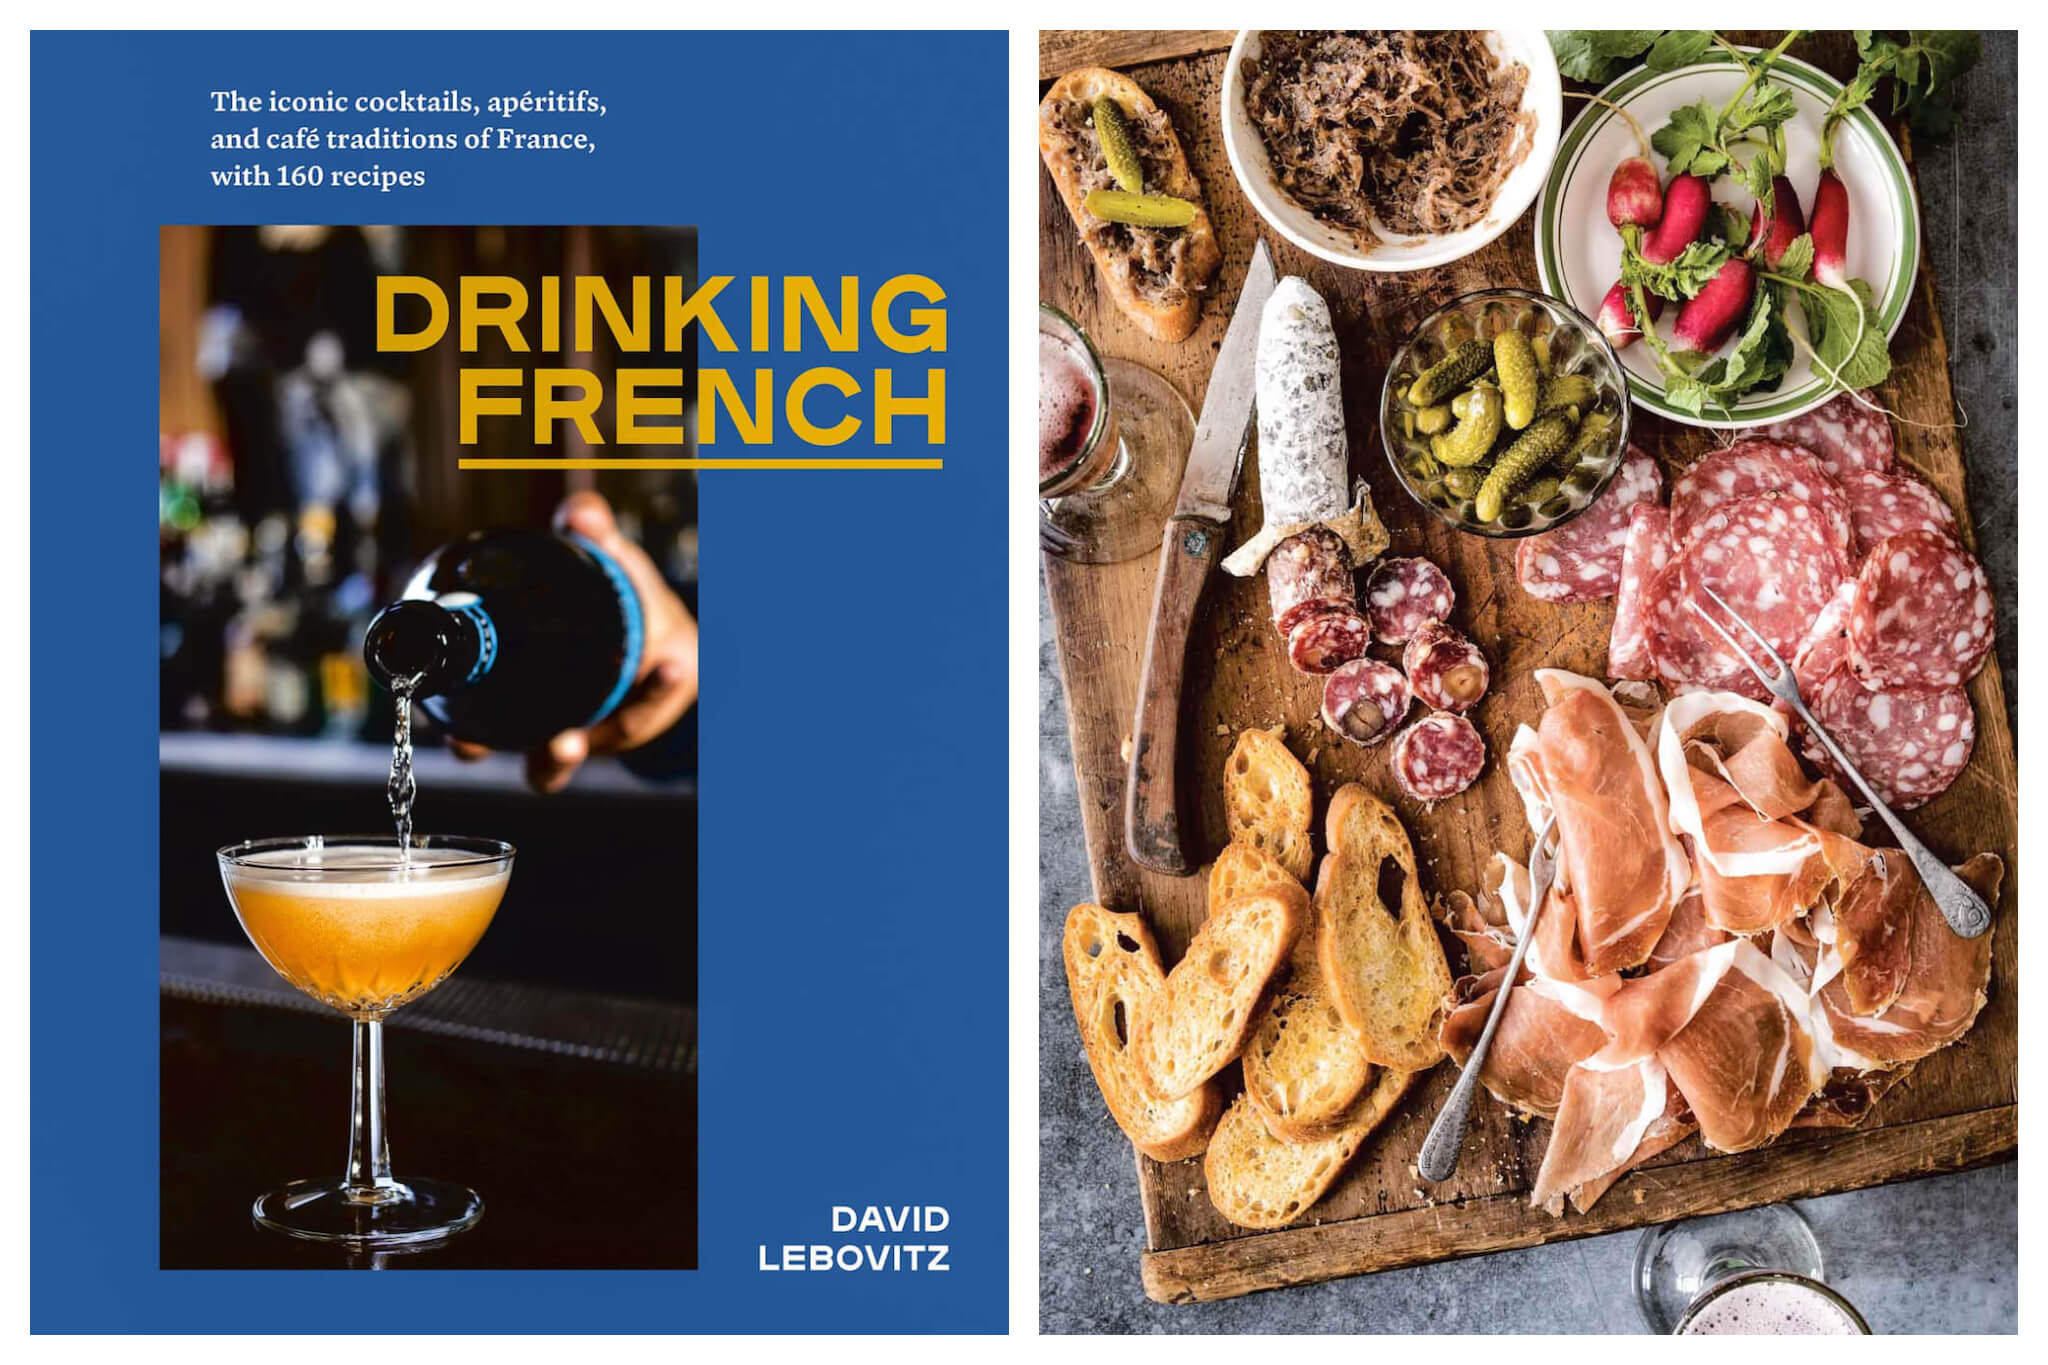 Left: A bartender pours orange-colored alcohol into a cocktail glass with a blue background behind the photo. The title of the book, Drinking French, crosses over the photo and background. Right: A bright overlay of a charcuterie board that includes meats, slices of baguette, pickles, tapenade and radishes.